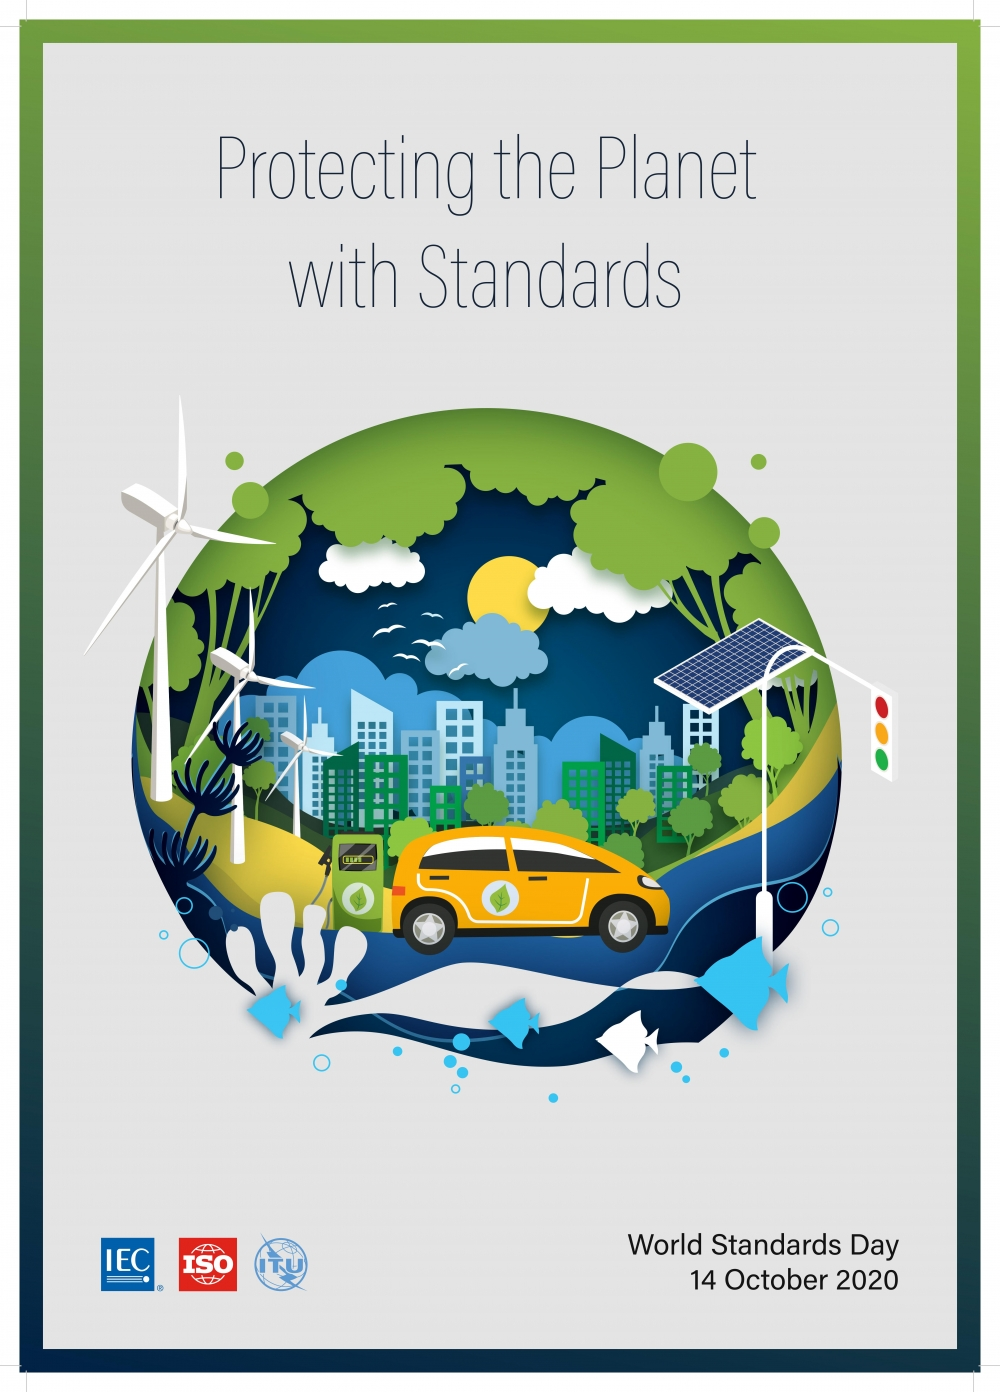 world standards day 2020 protecting the planet with standards